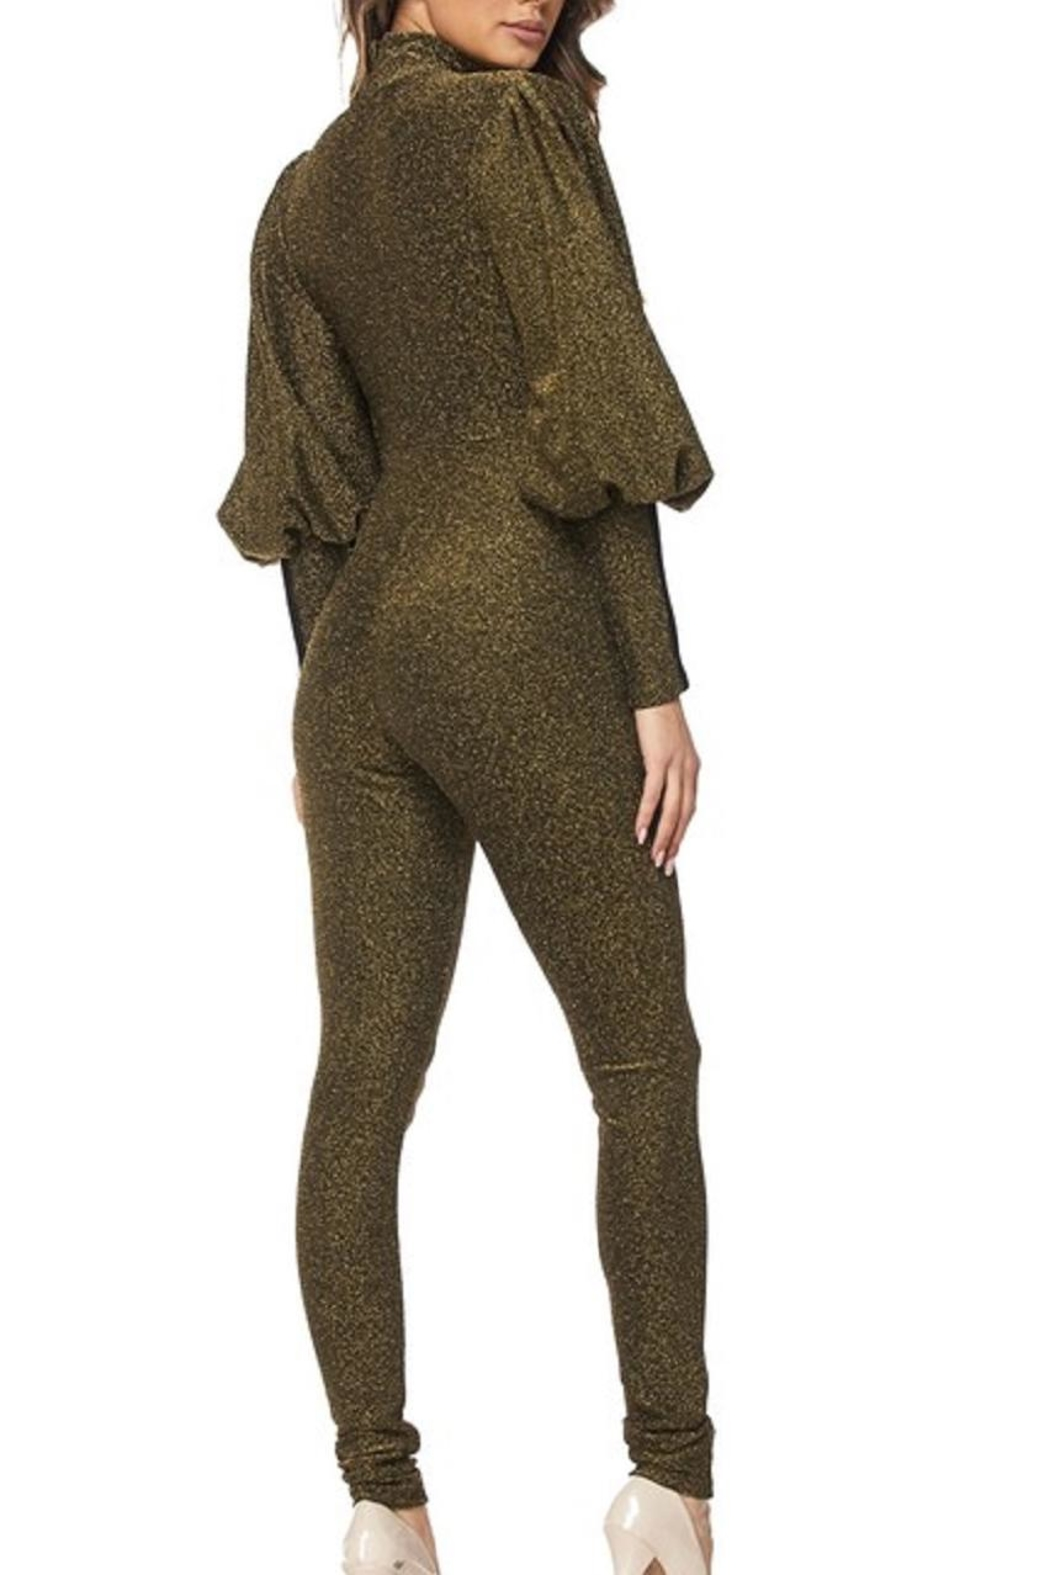 hera collection Olive Shimmer Jumpsuit - Front Full Image